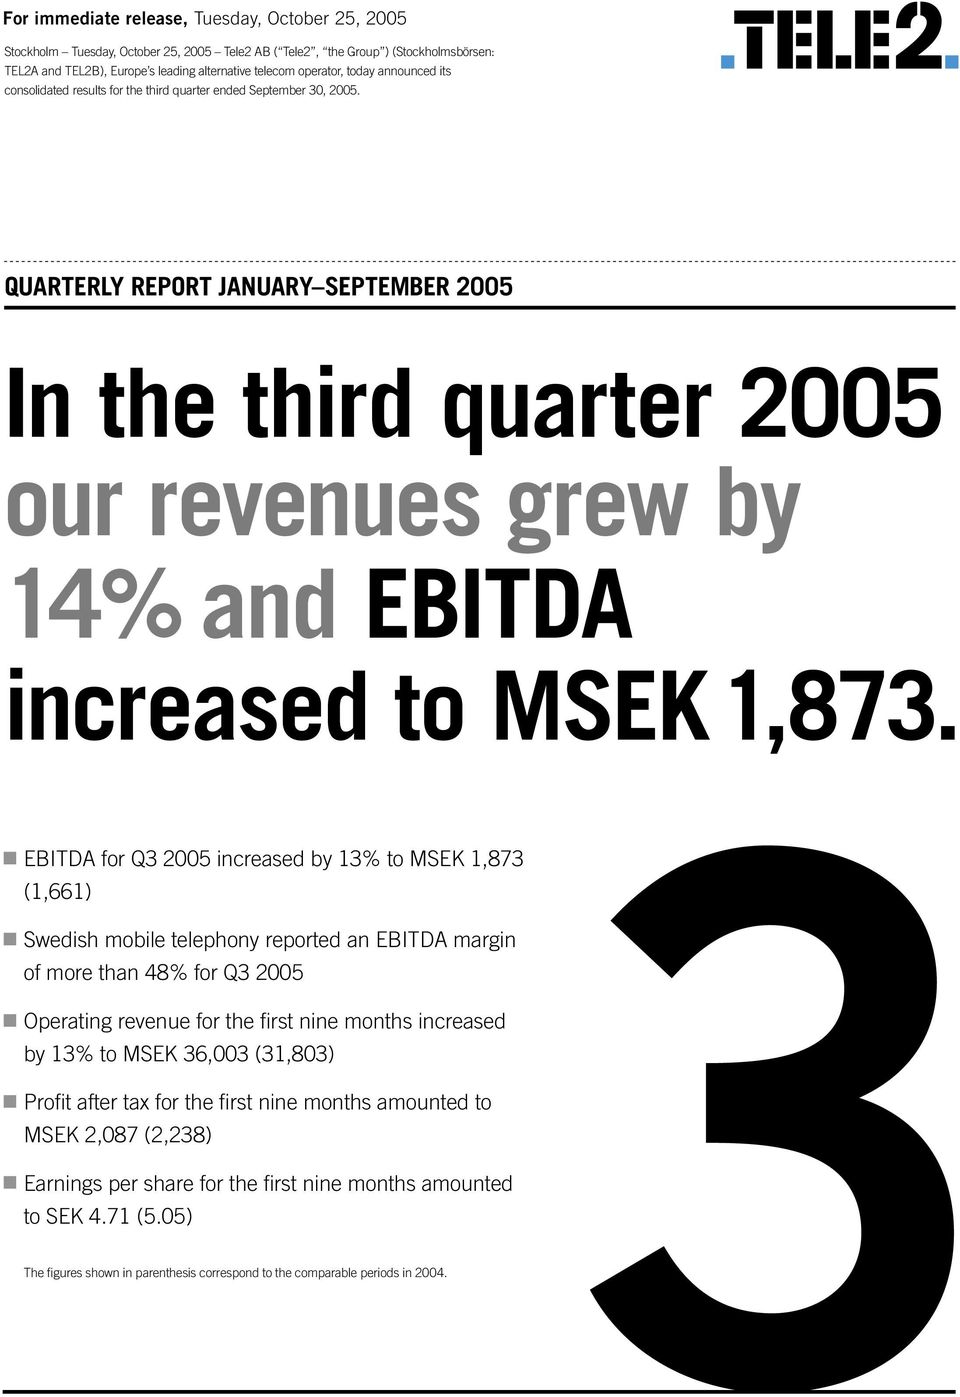 QUARTERLY REPORT JANUARY SEPTEMBER 2005 In the third quarter 2005 our revenues grew by 14% and EBITDA increased to MSEK 1,873.